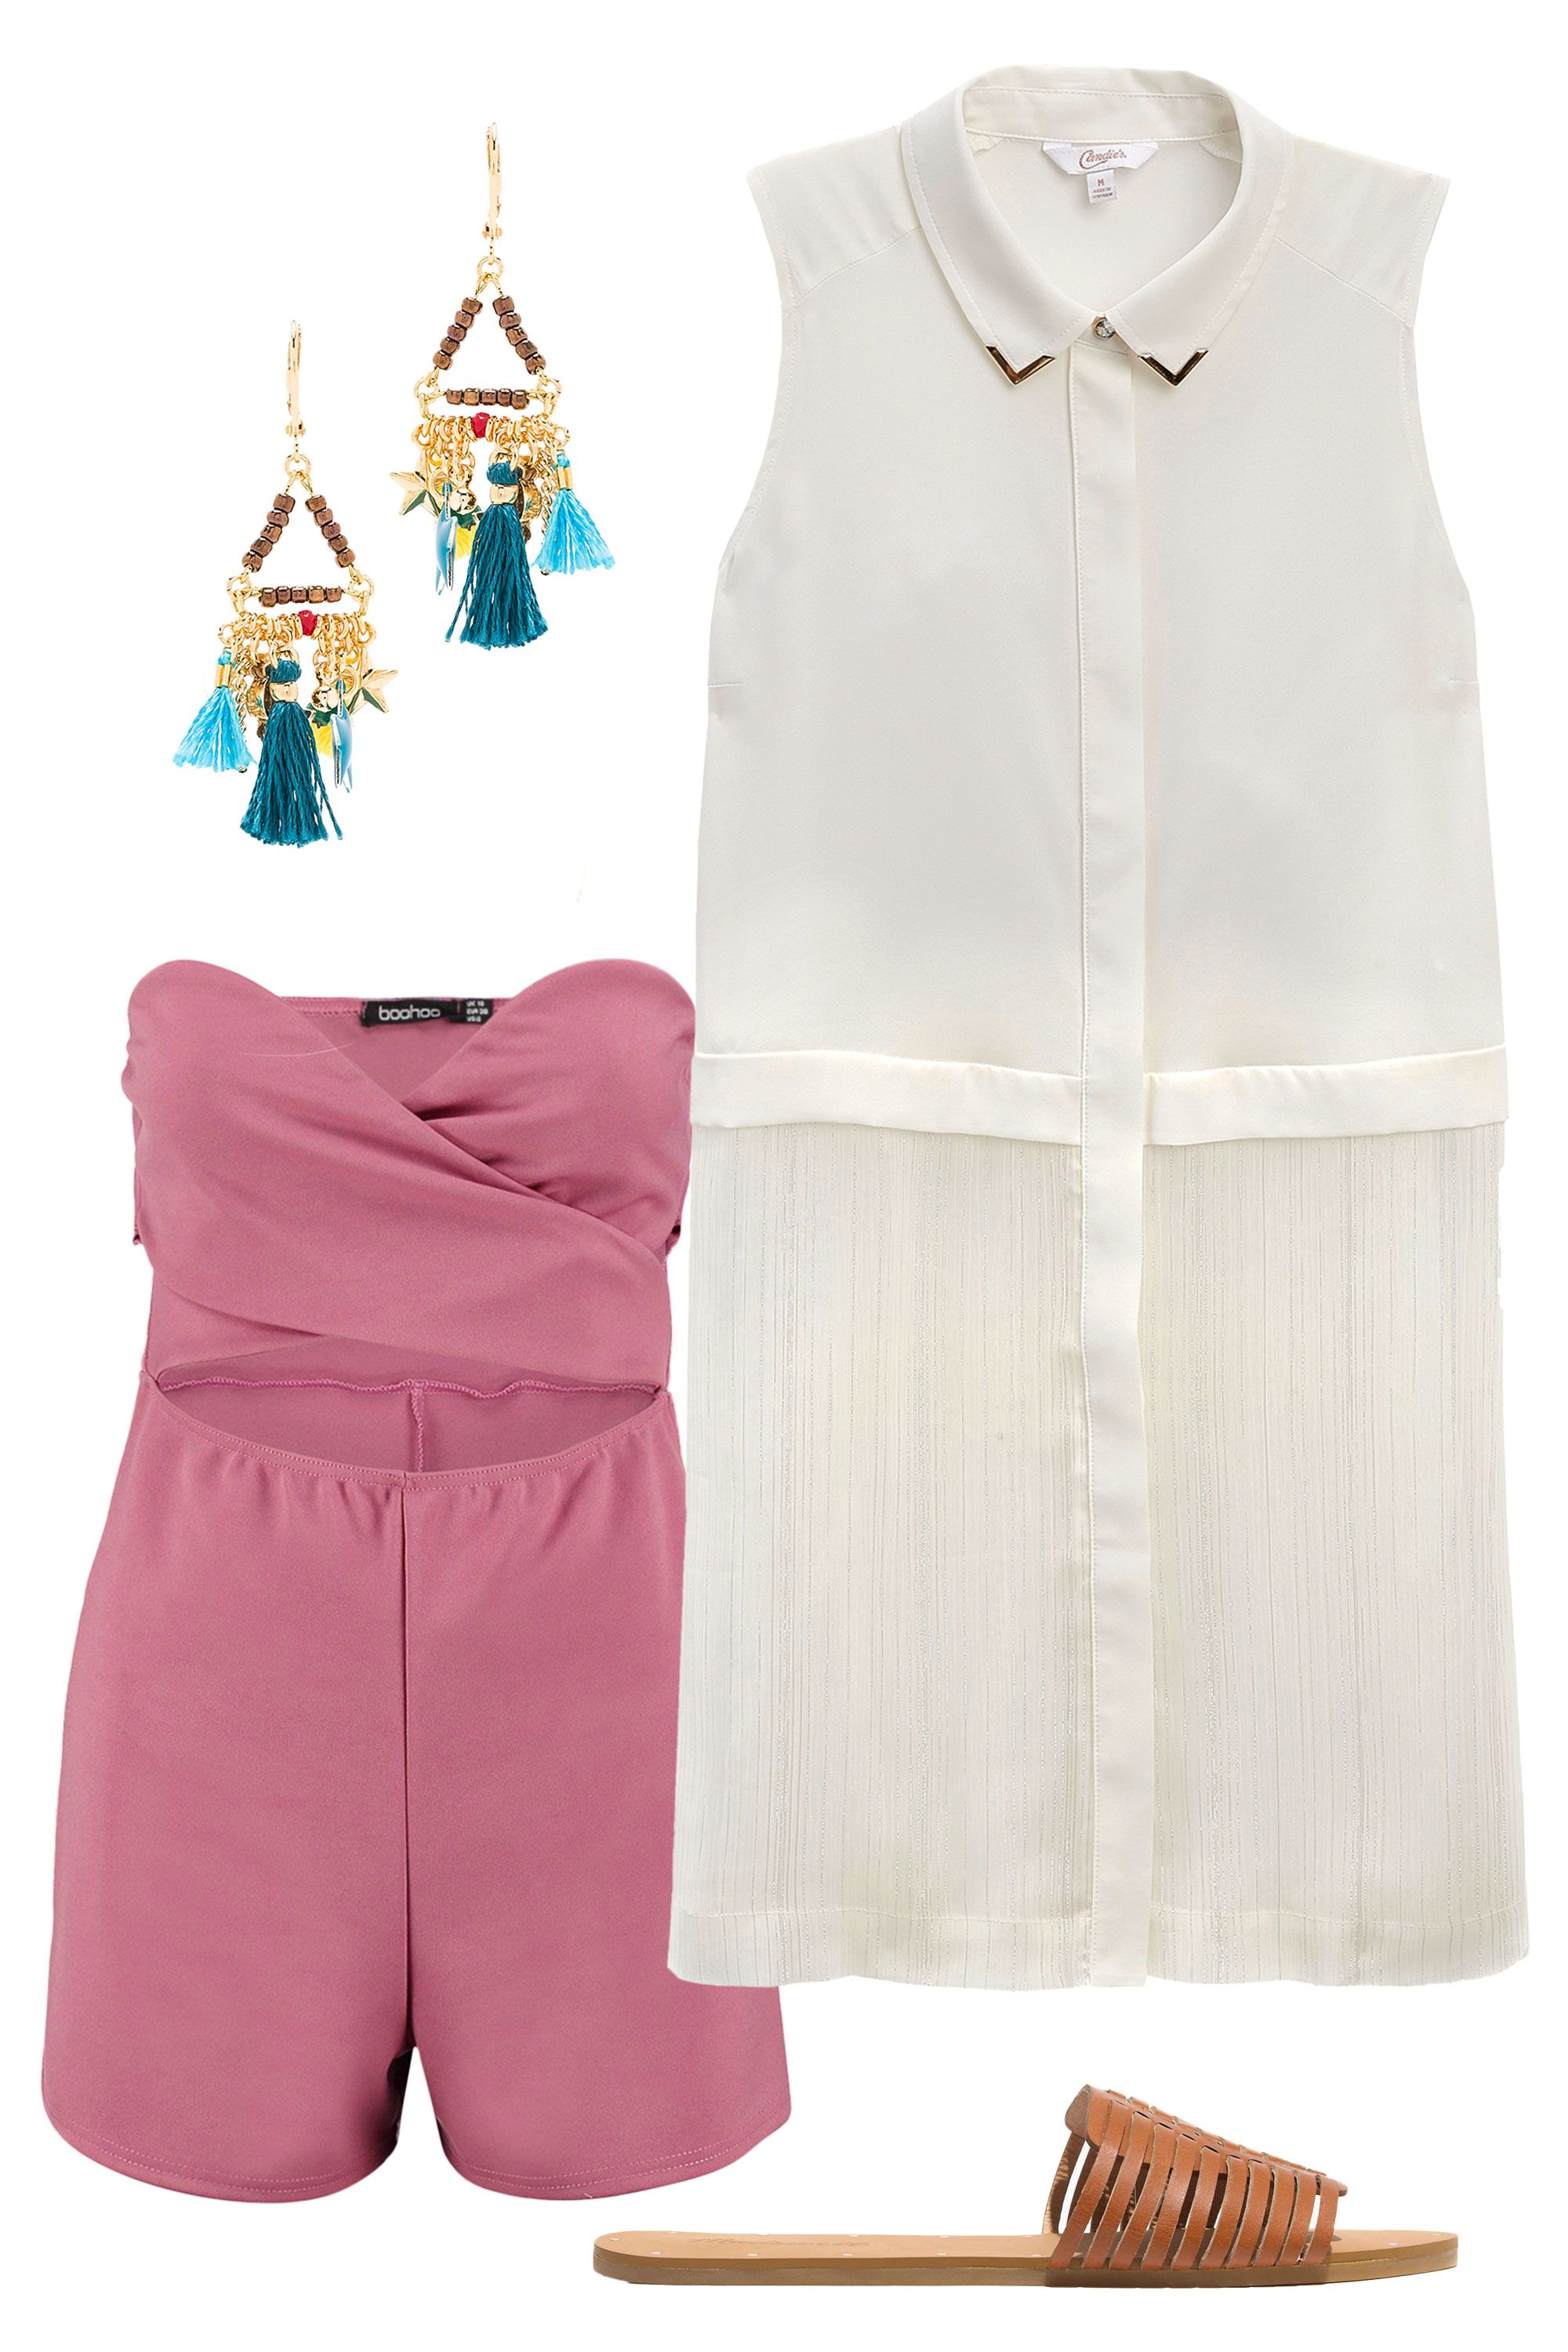 """<p>Take the top from boardroom boss to total beach babe with a few key accessories. Wear it open over a cheeky cut-out romper, and slip on neutral sandals and colorful tassel earrings. Hellooo, weekend!<em> </em></p><p><em><br></em></p><p><em><i><a href=""""http://www.kohls.com/product/prd-2586786/juniors-candies-button-front-tunic-shirt.jsp?color=Marshmallow&cid=DIS16FallTPR4&utm_campaign=201607_Candies_Cosmo&utm_medium=3p_dis&utm_source=Candies&utm_content=ad_1"""" target=""""_blank"""">Button-Front Tunic Shirt</a>, CANDIE'S, $38</i></em>&#x3B; <em><a href=""""http://www.boohoo.com/boohoo/ebiz/boohoo/invt/dzz71948"""" target=""""_blank"""">Ava Strapless Bandeau Cut Front Playsuit</a></em><i>, BOOHOO, $26&#x3B; <a href=""""http://www.revolve.com/shashi-lilu-charm-earrings-in-pyrite/dp/SHAS-WL40/?d=Womens"""" target=""""_blank"""">Lilu Charm Earrings</a>, SHASHI, $66&#x3B; <a href=""""https://www.madewell.com/madewell_category/SHOESANDBOOTS/sandals/PRDOVR~F1691/F1691.jsp?color_name=english-saddle"""" target=""""_blank"""">The Willa Slide Sandal</a>, MADEWELL, $59.99<strong></strong></i></p>"""